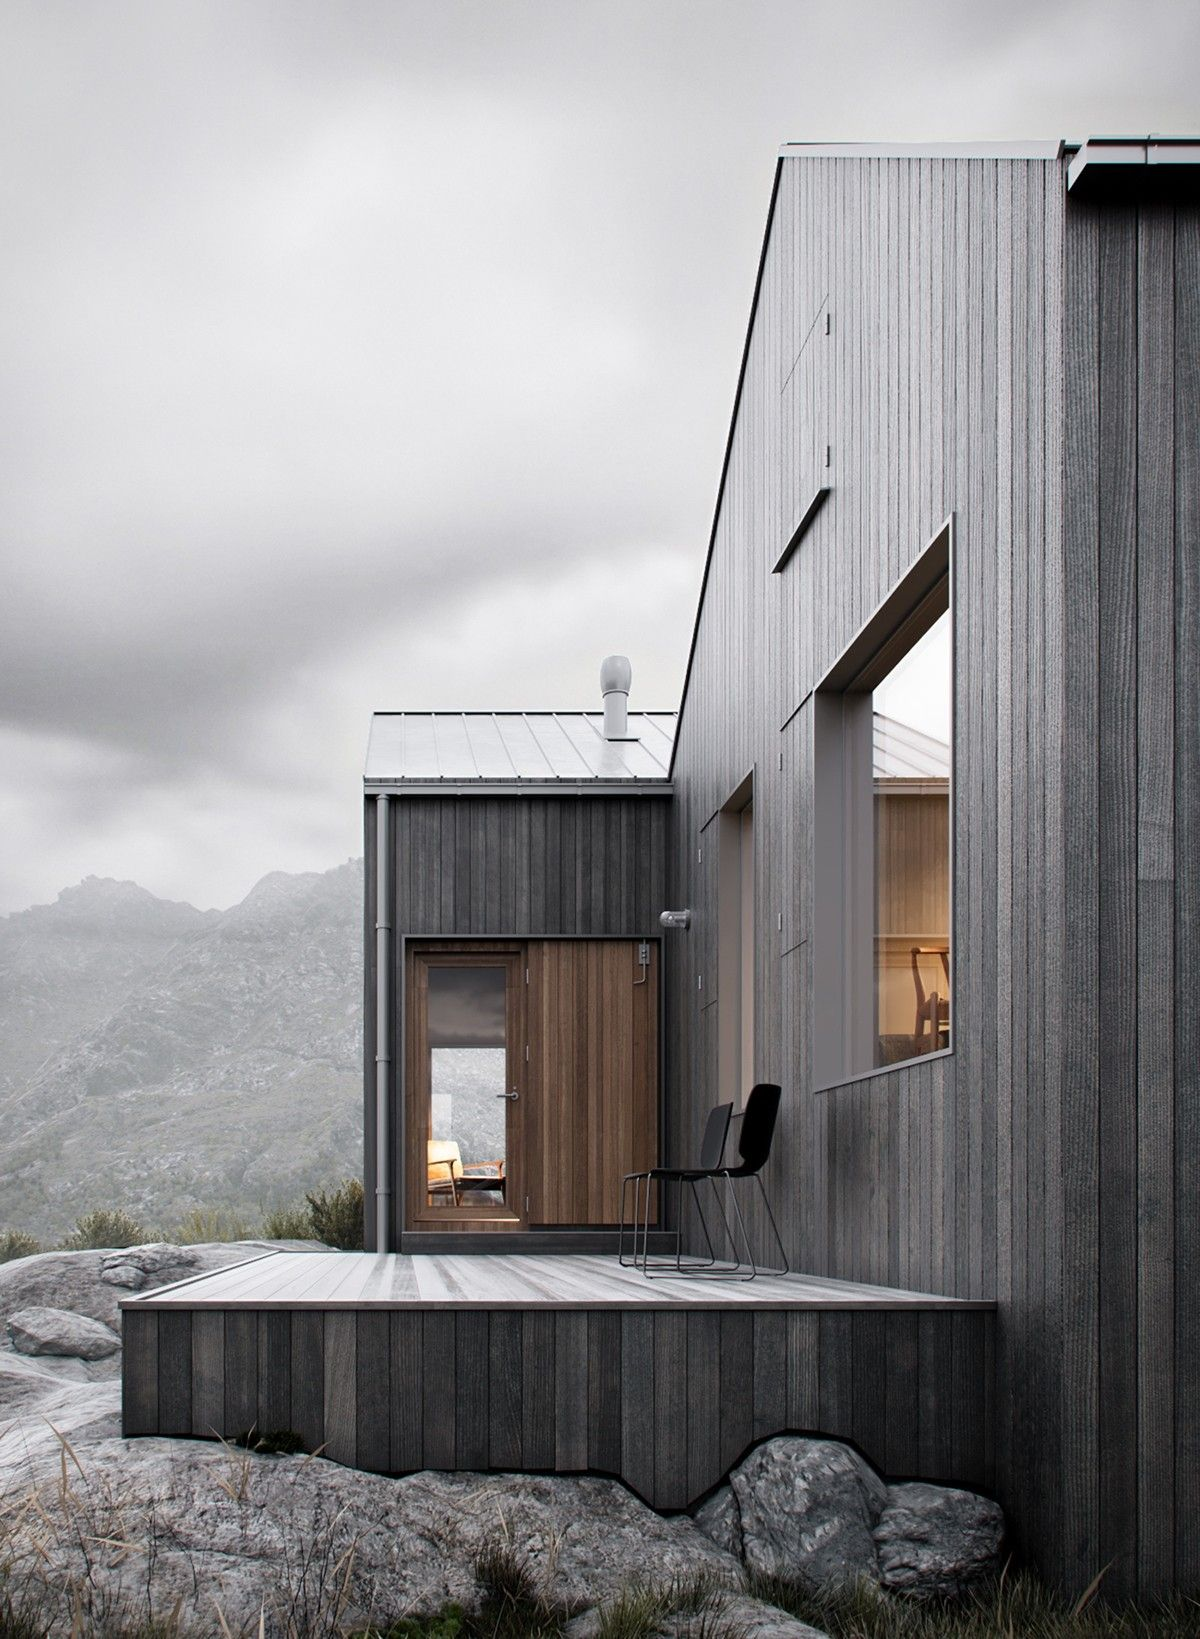 Rock and surface | architectural | Pinterest | Architecture, Doors ...